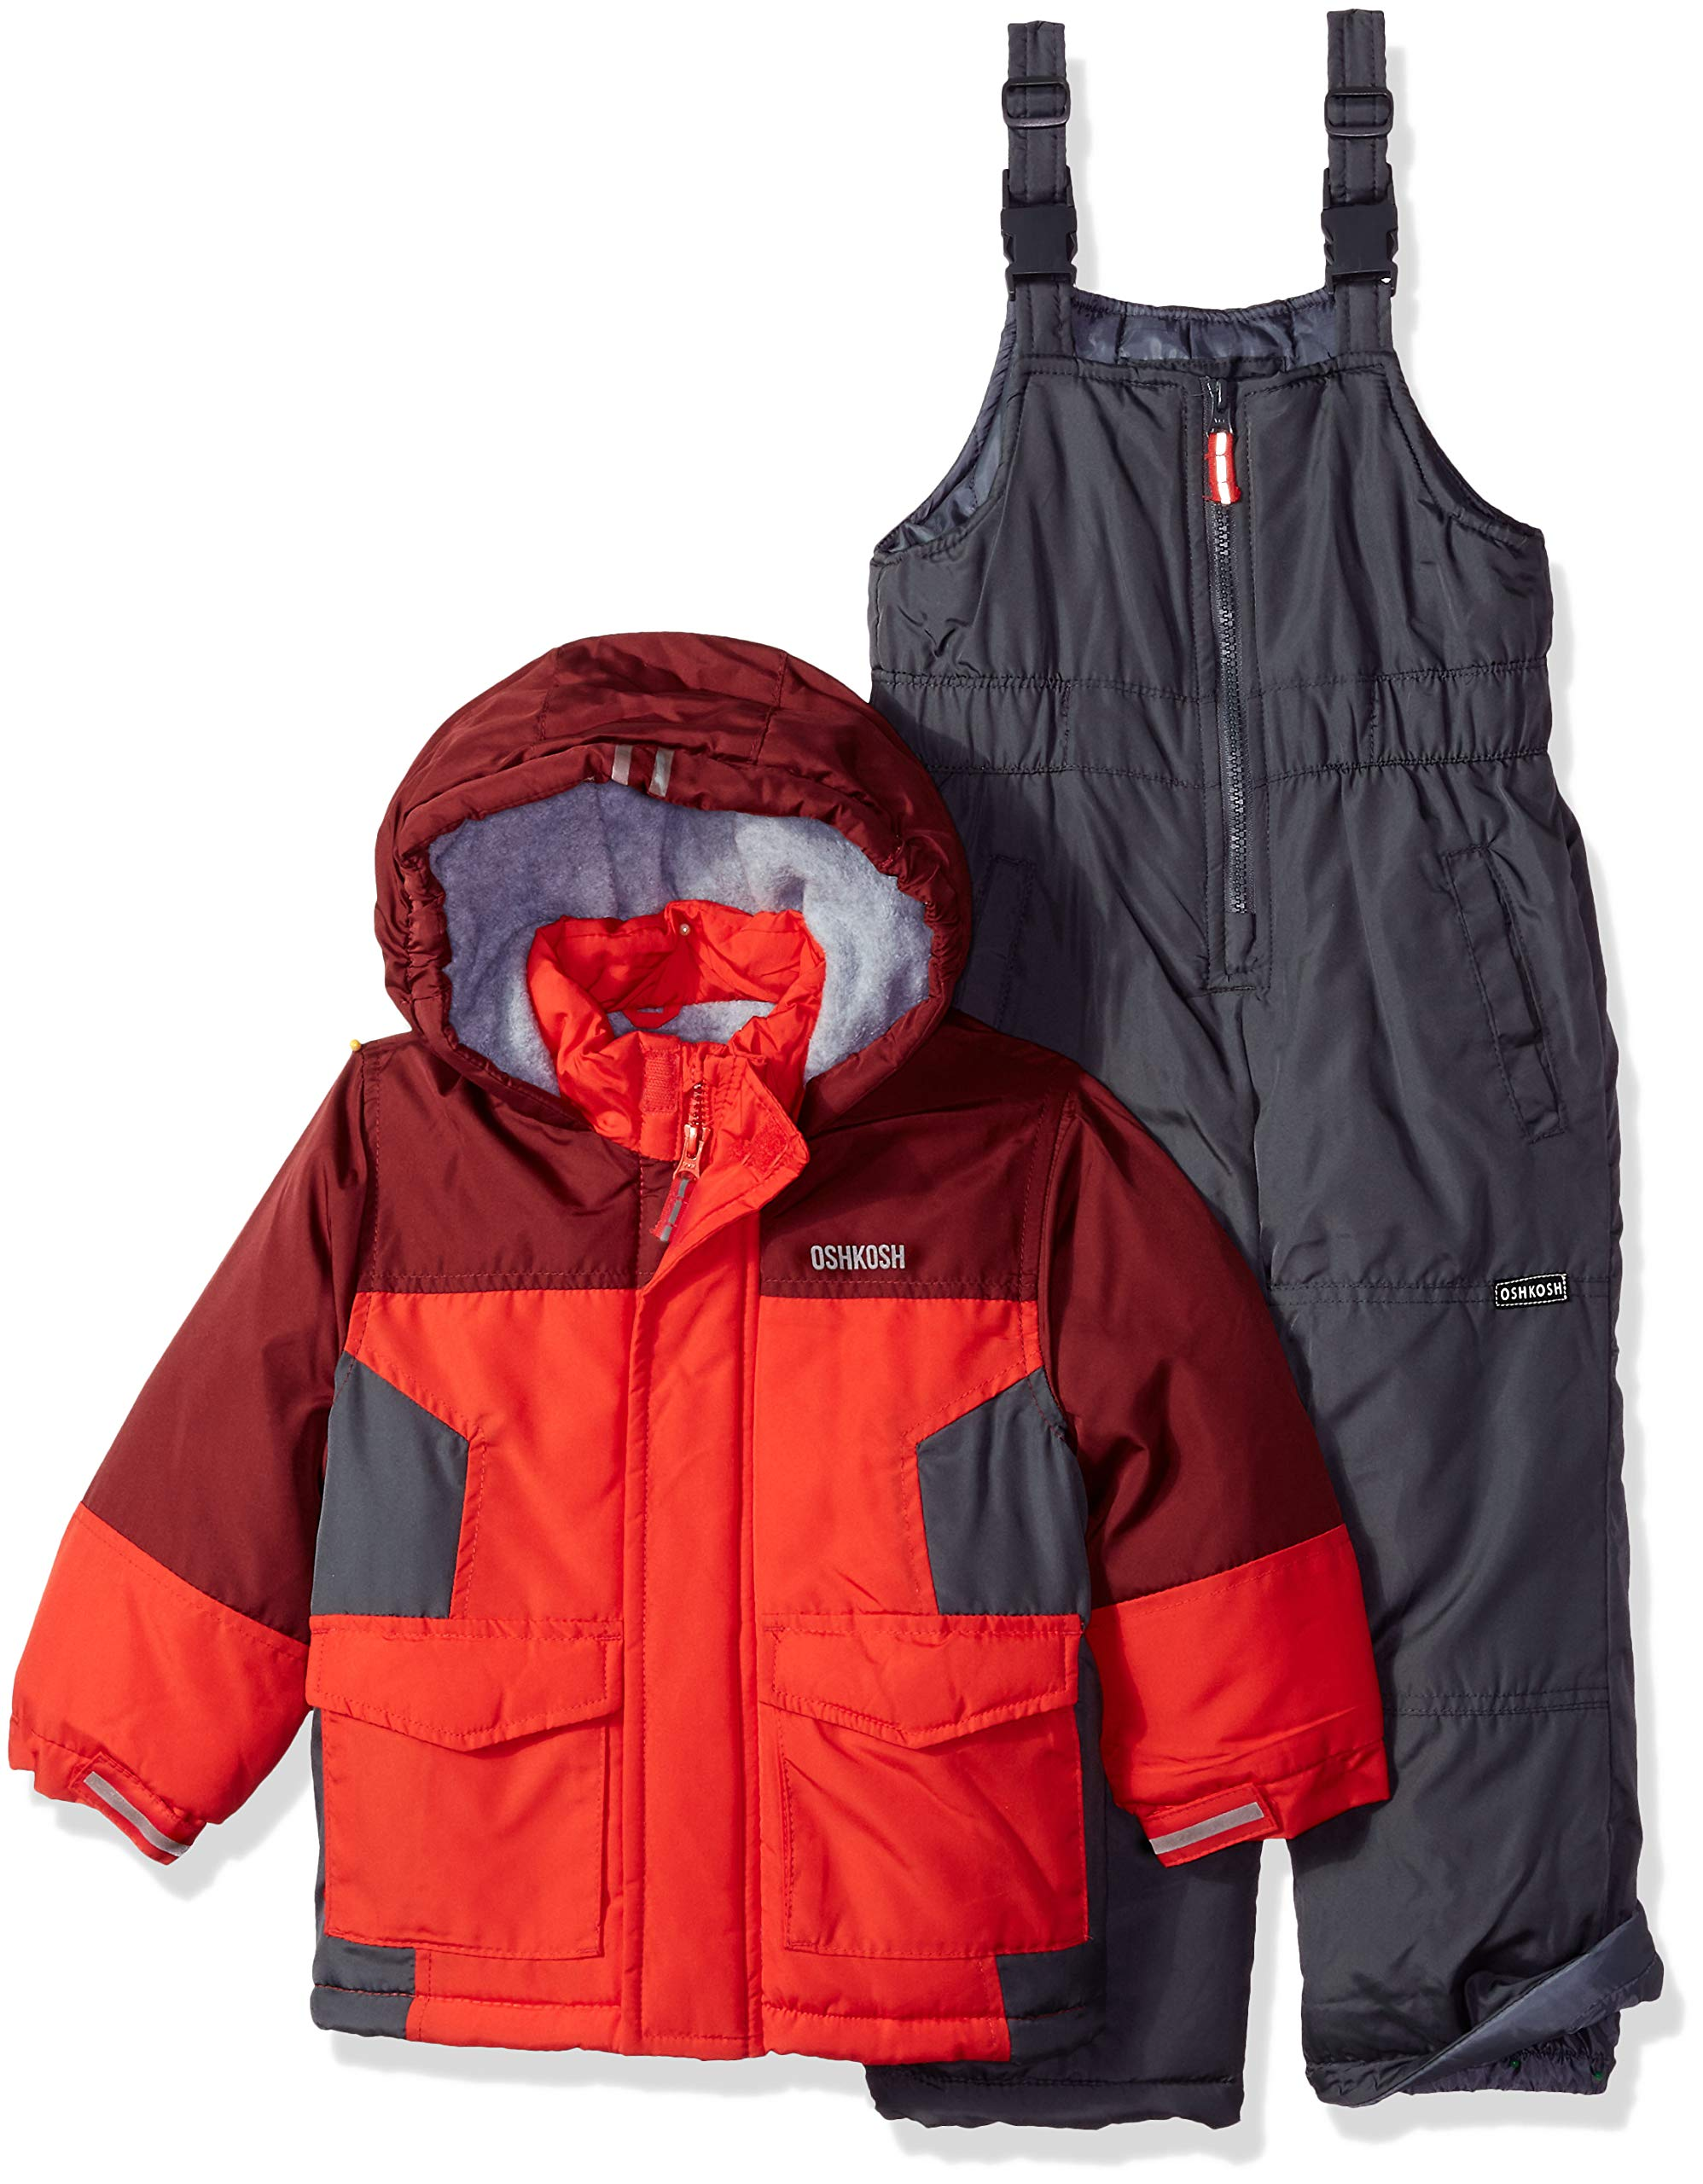 OshKosh B_Gosh Boys' Toddler Ski Jacket and Snowbib Snowsuit Set, Maple Leaf/Sneaker Grey, 2T